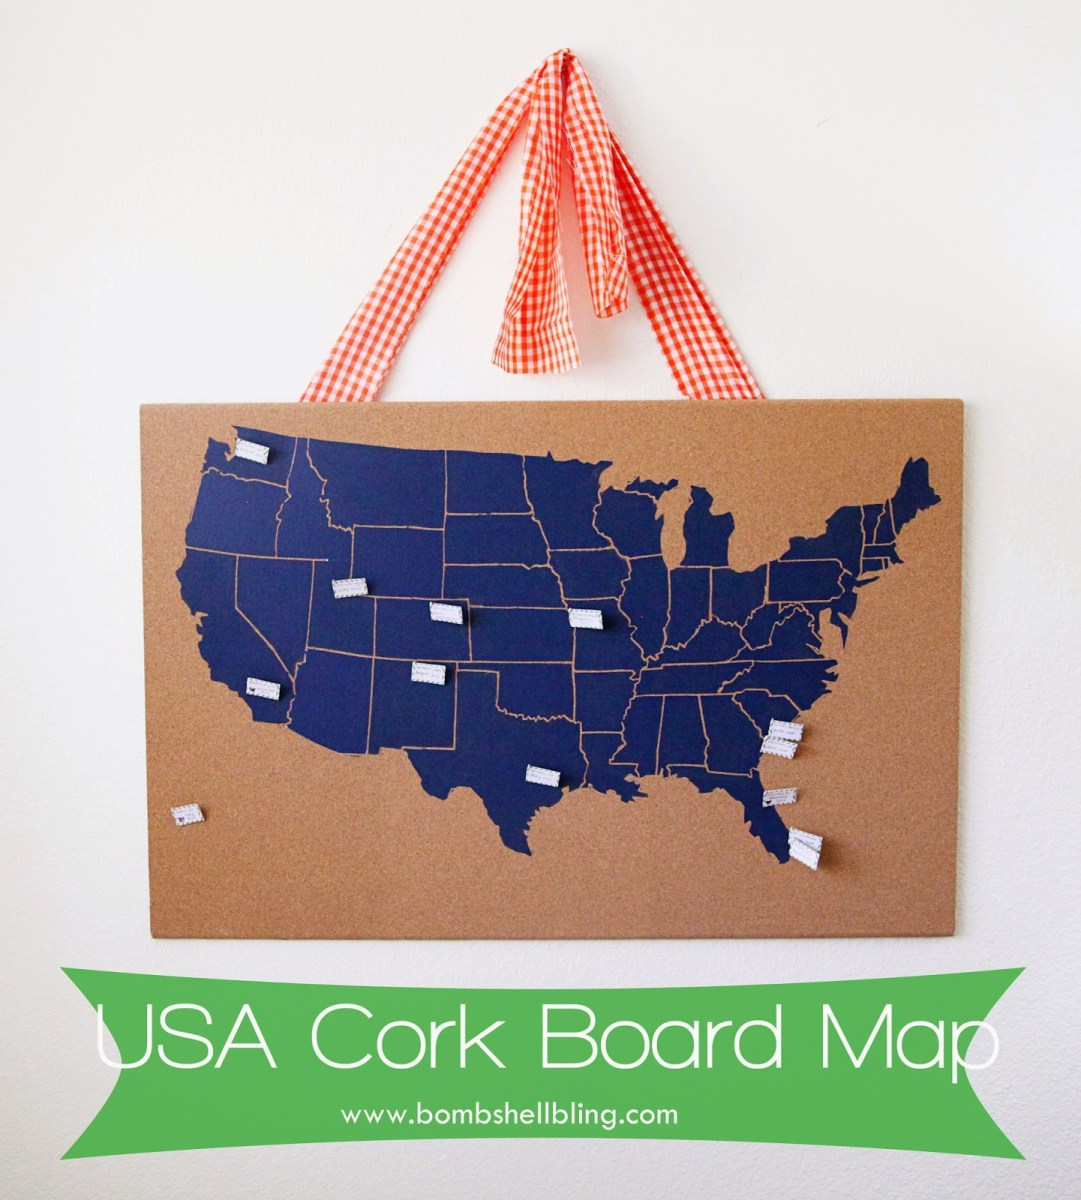 USA Cork Board Map